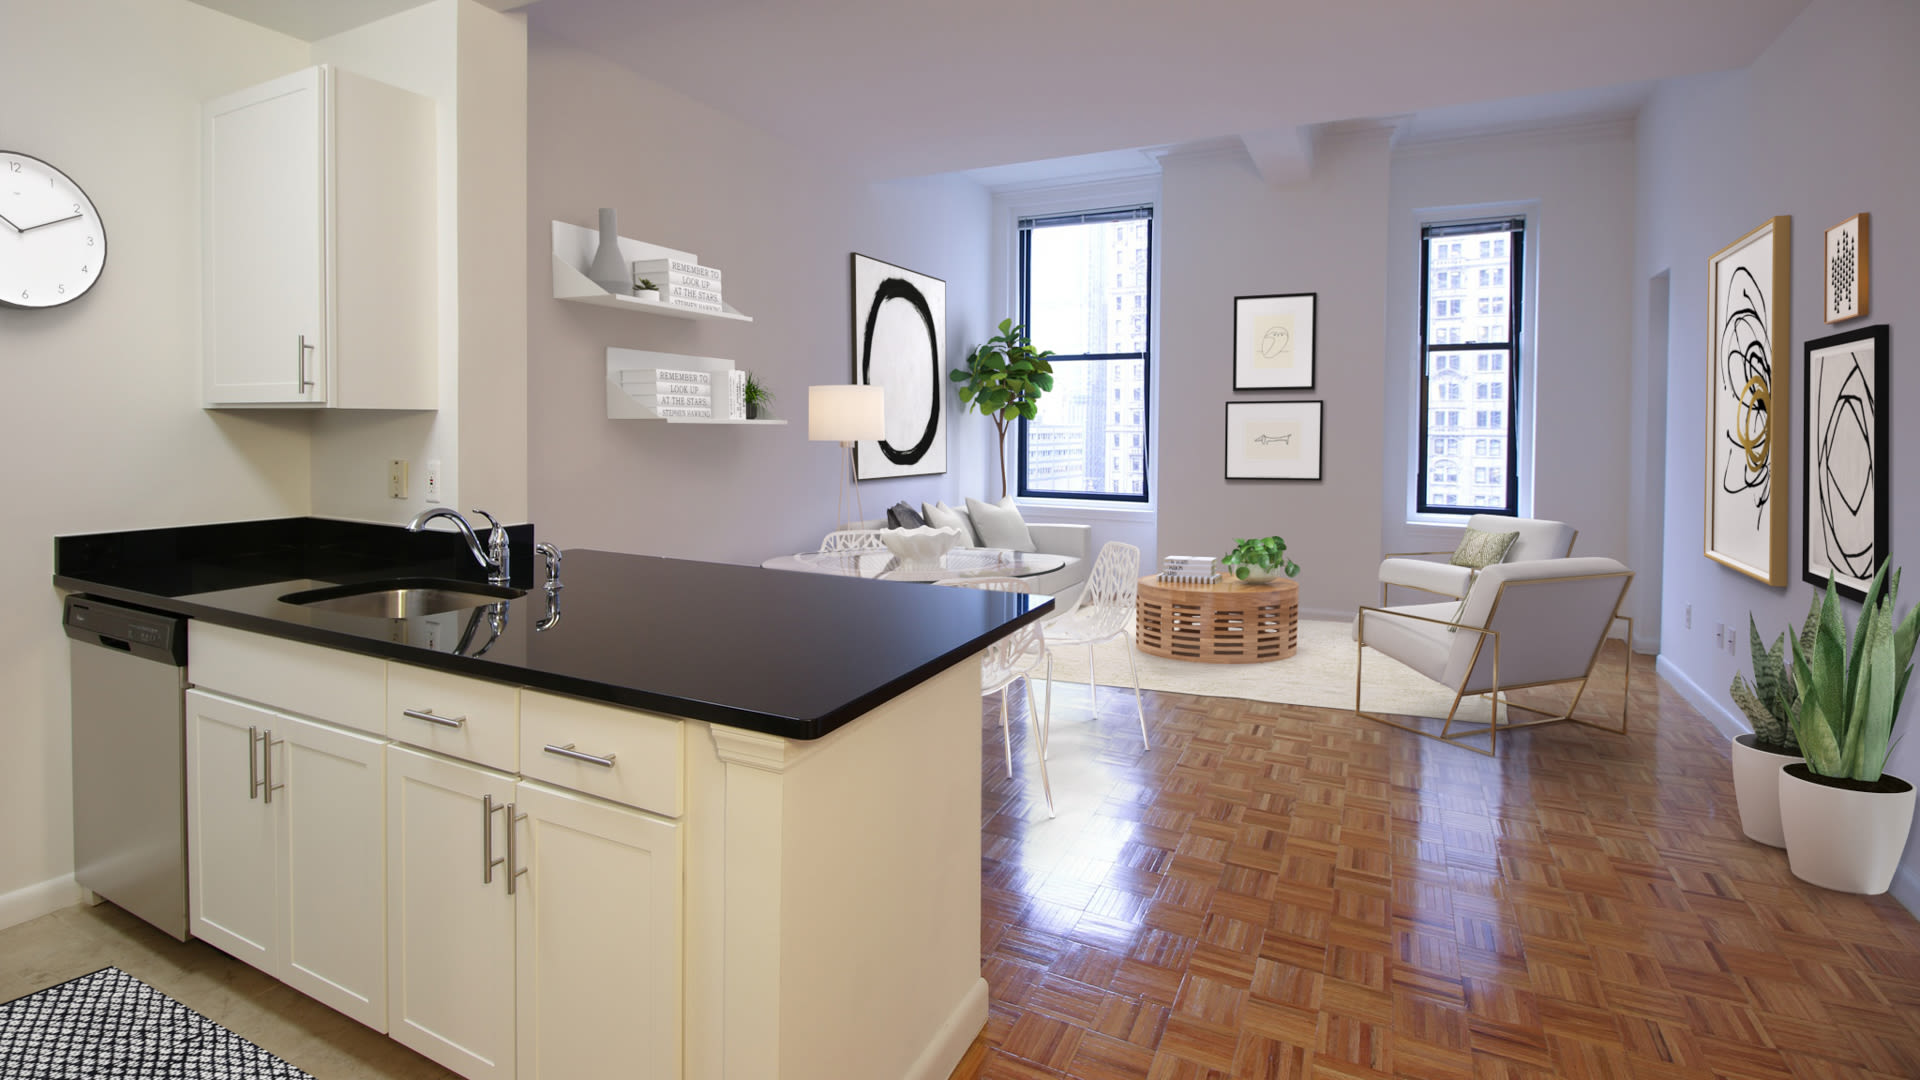 71 Broadway Apartments - Kitchen and Living Area